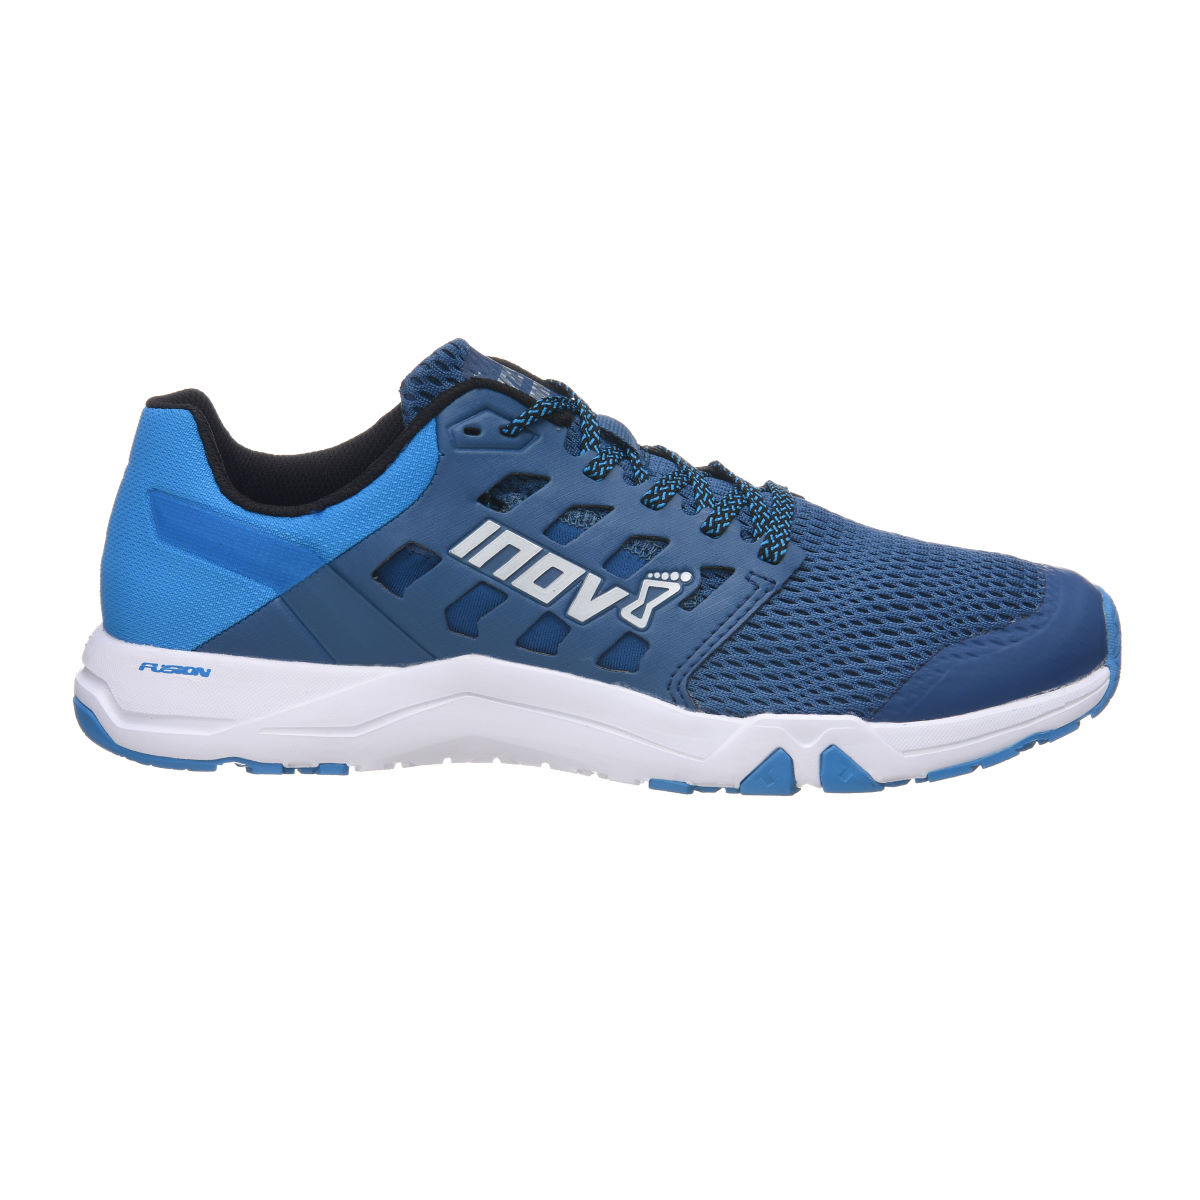 Inov-8 All Train 215 Shoes - Zapatillas de running